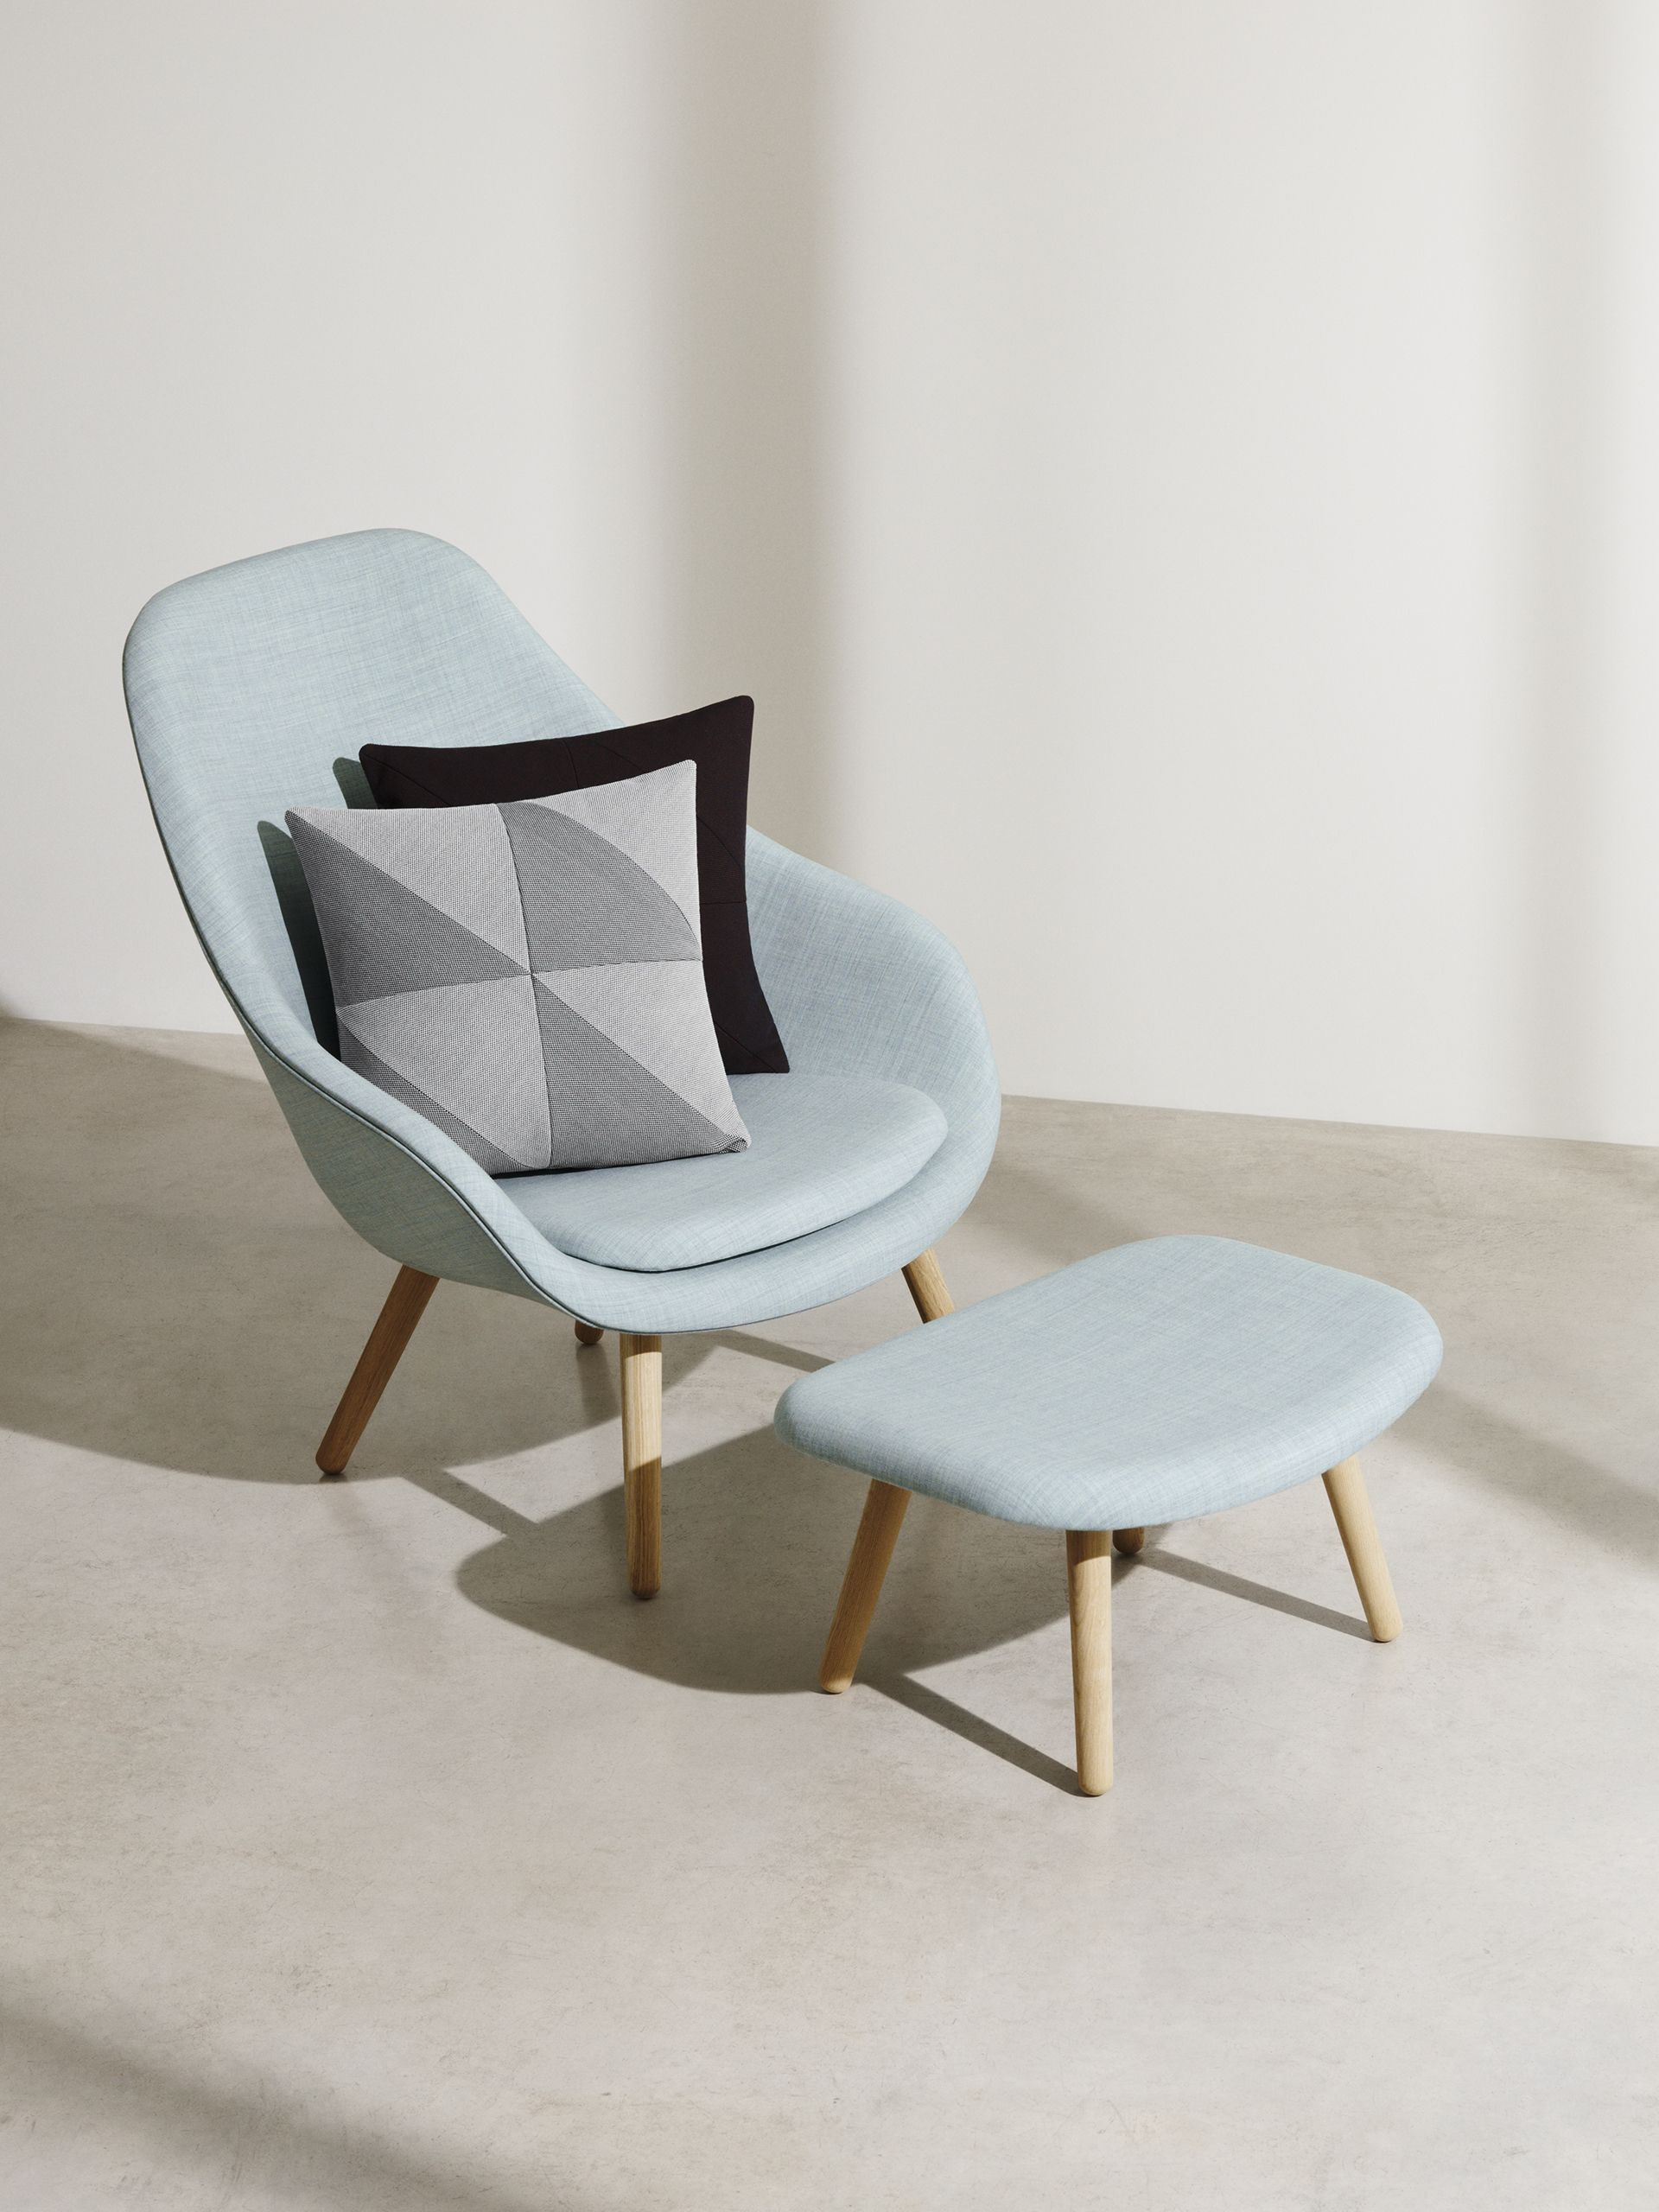 Light blue midcentury chair and matching footstool